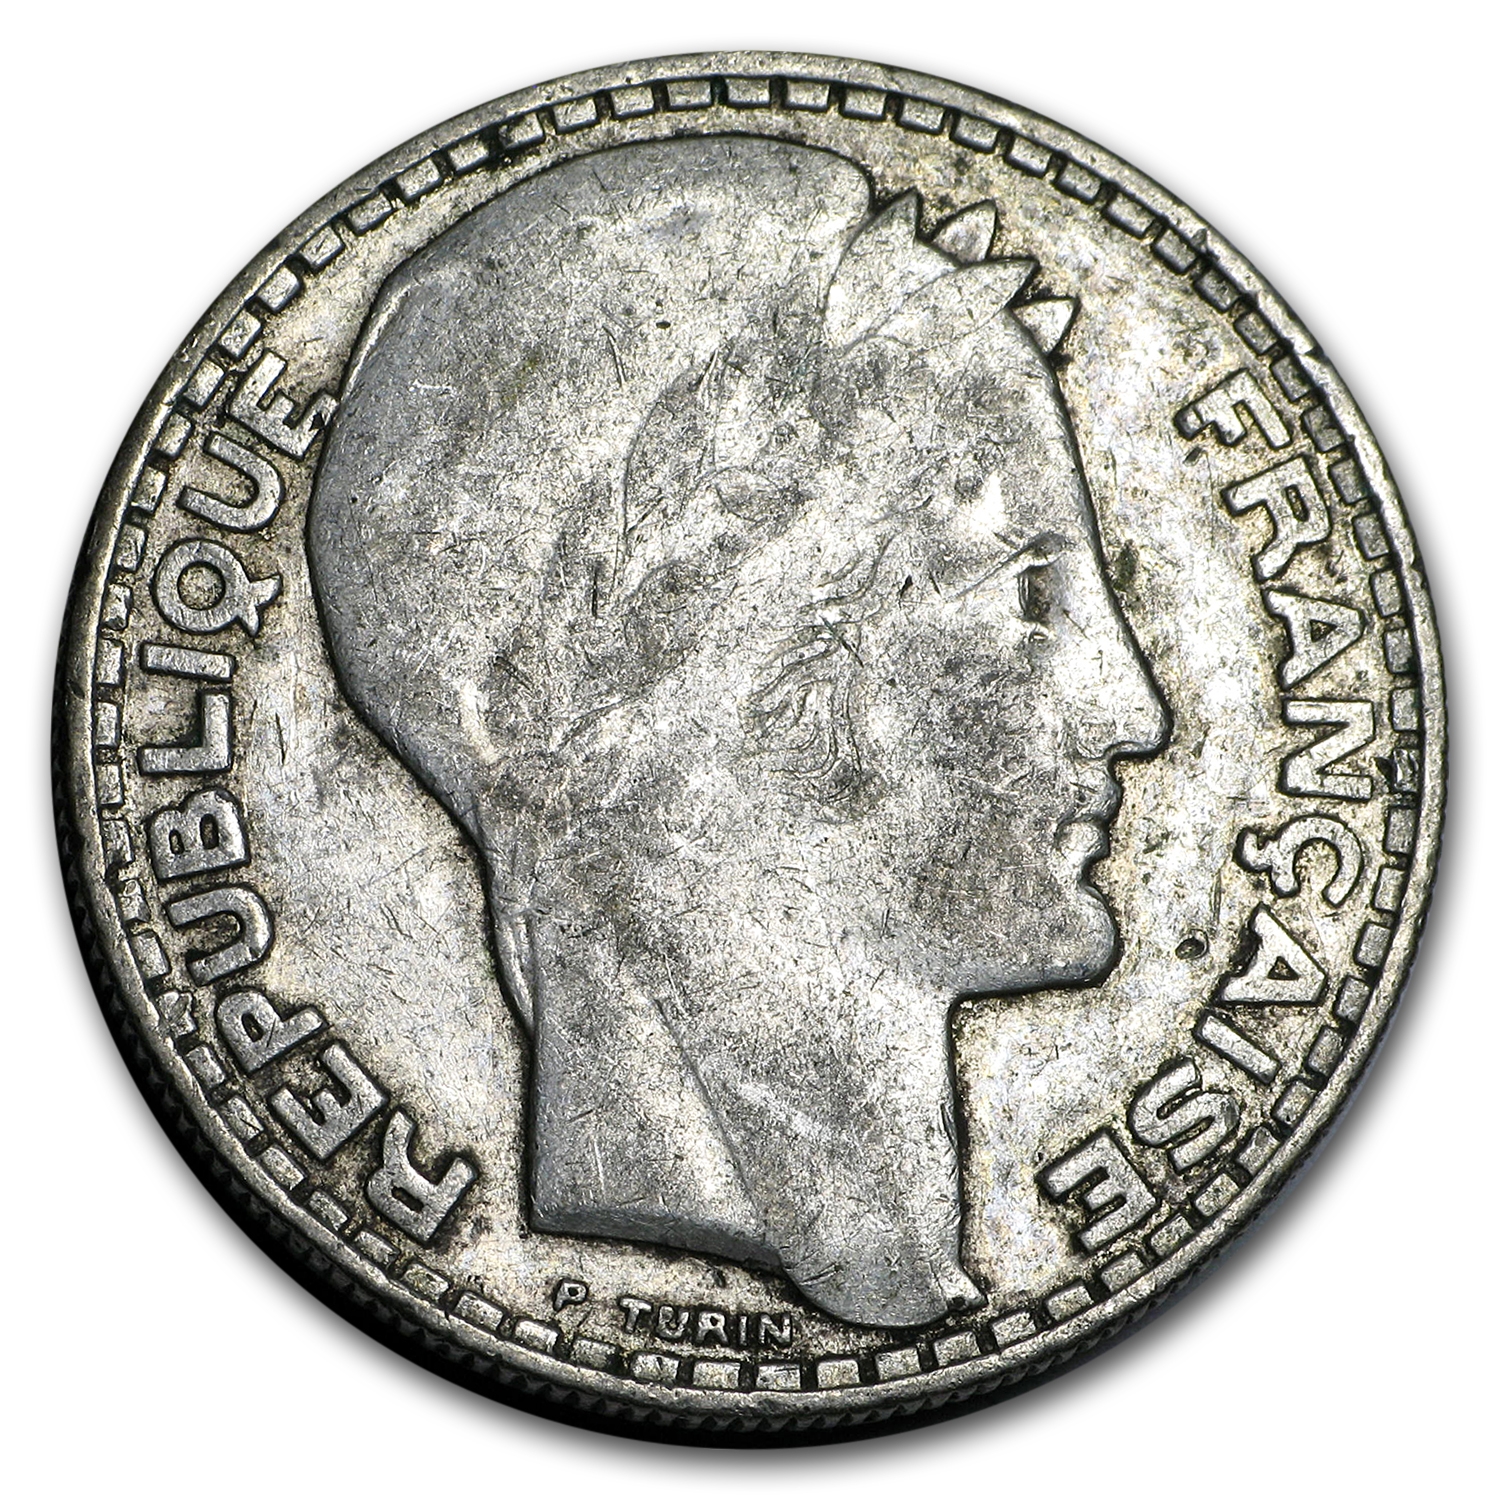 France 1929-1939 20 Francs Silver Avg Circ ASW .4372